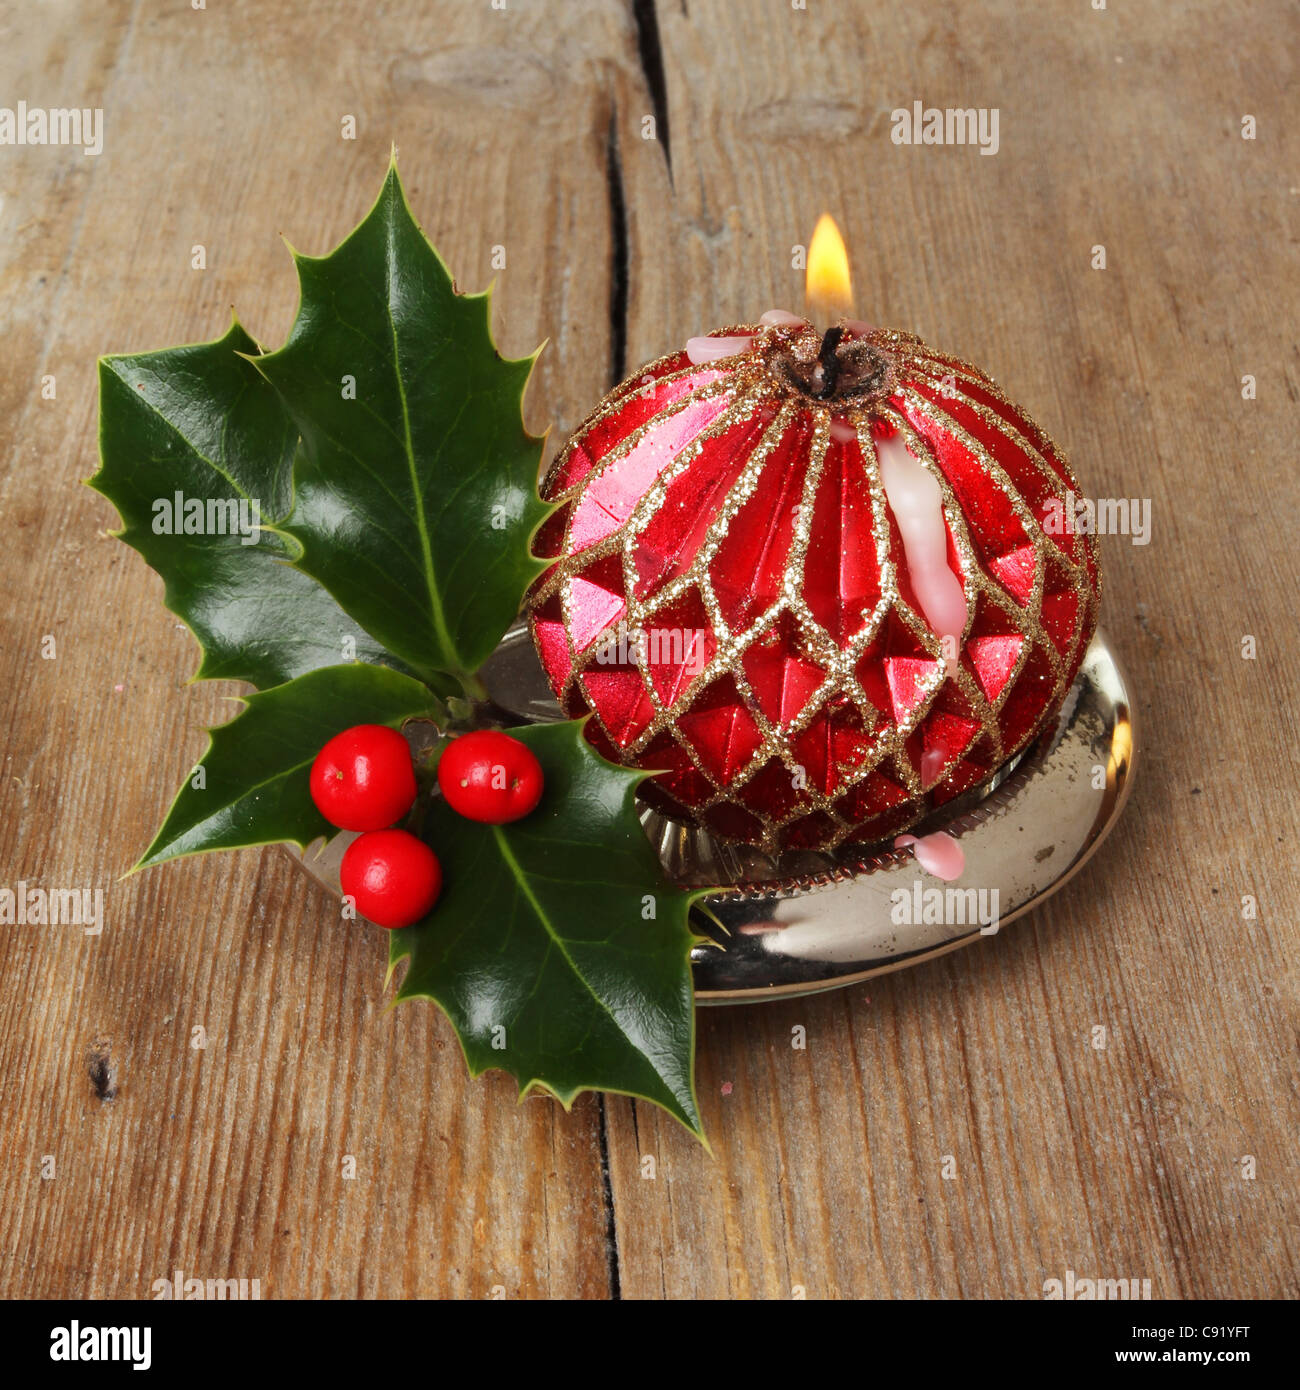 Decorative burning red and gold candle with a sprig of fresh holly on a background of old weathered wood - Stock Image